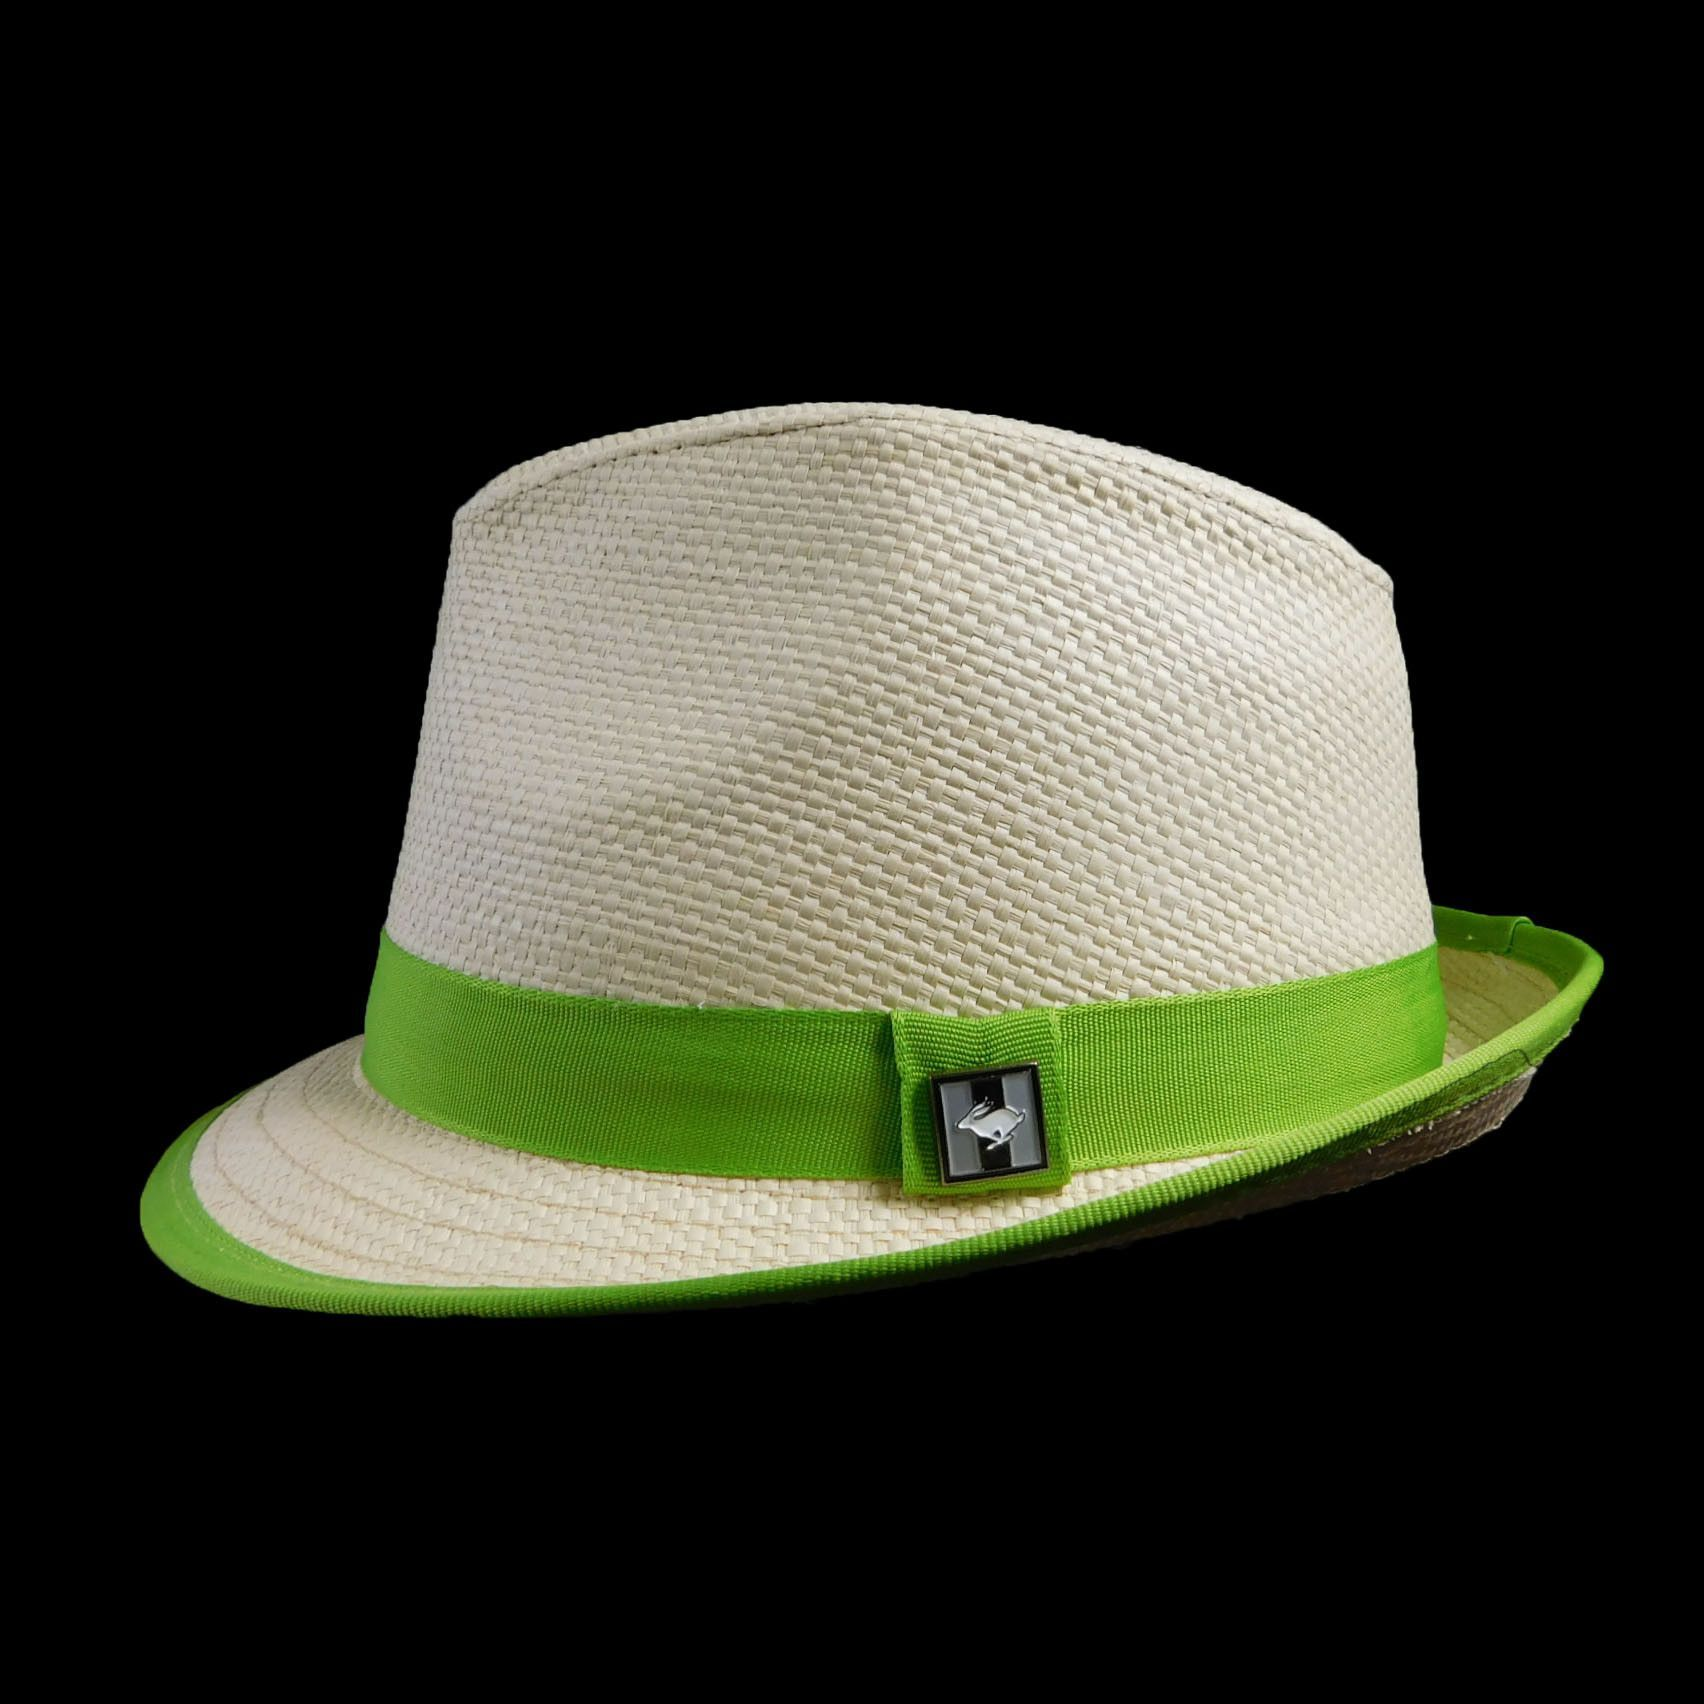 Peter Grimm Fedora with bright trim  2a62d6519810